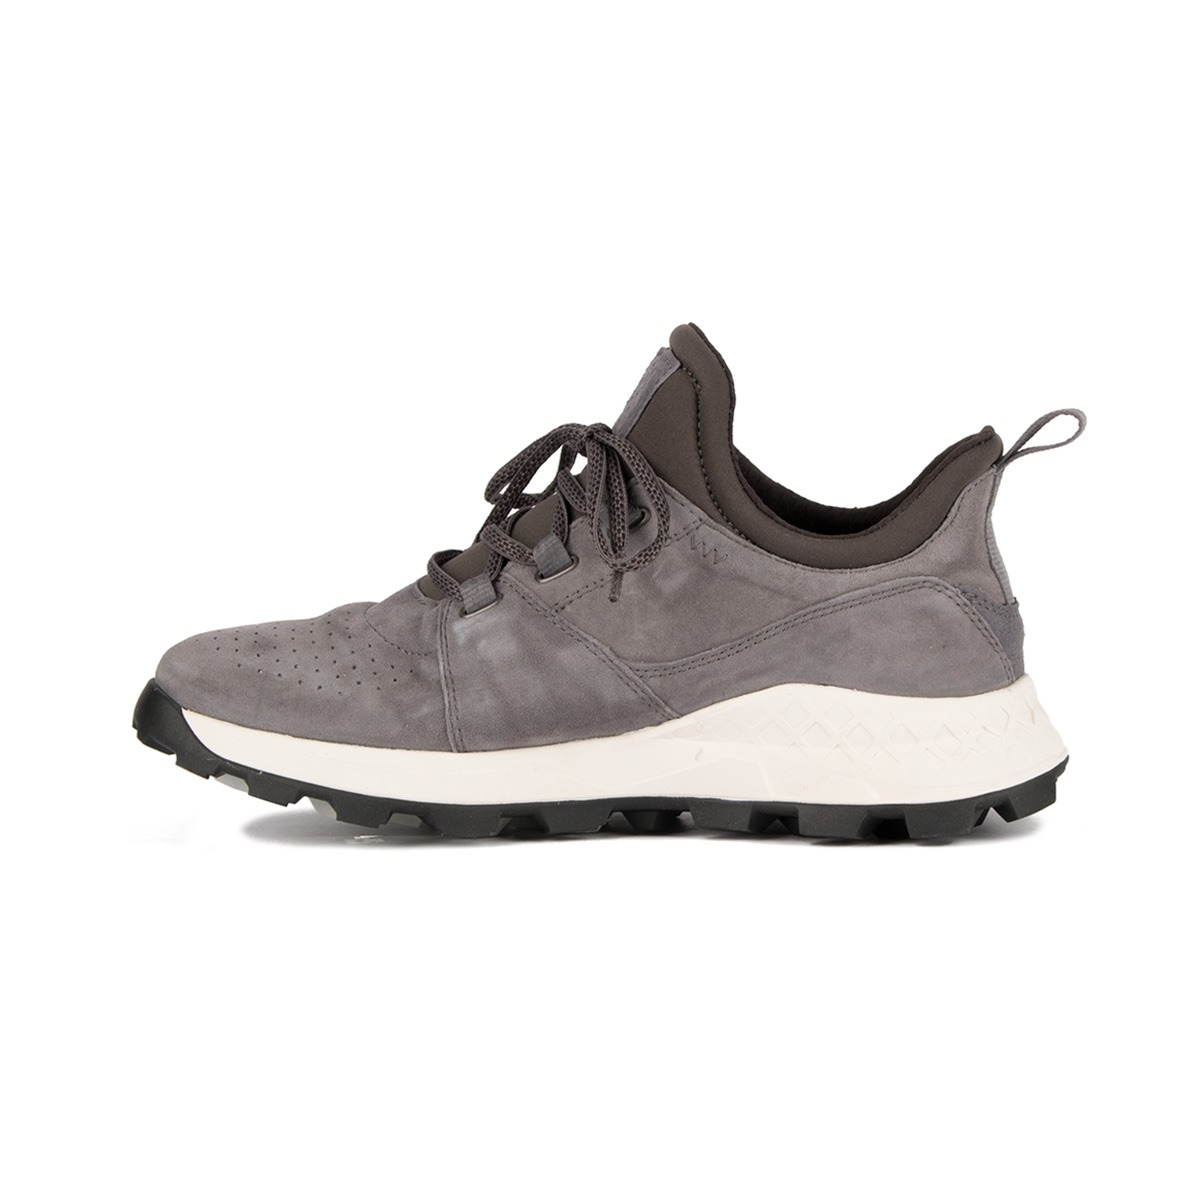 Timberland Bota Brooklyn Oxford Medium Grey Suede Gris Hombre